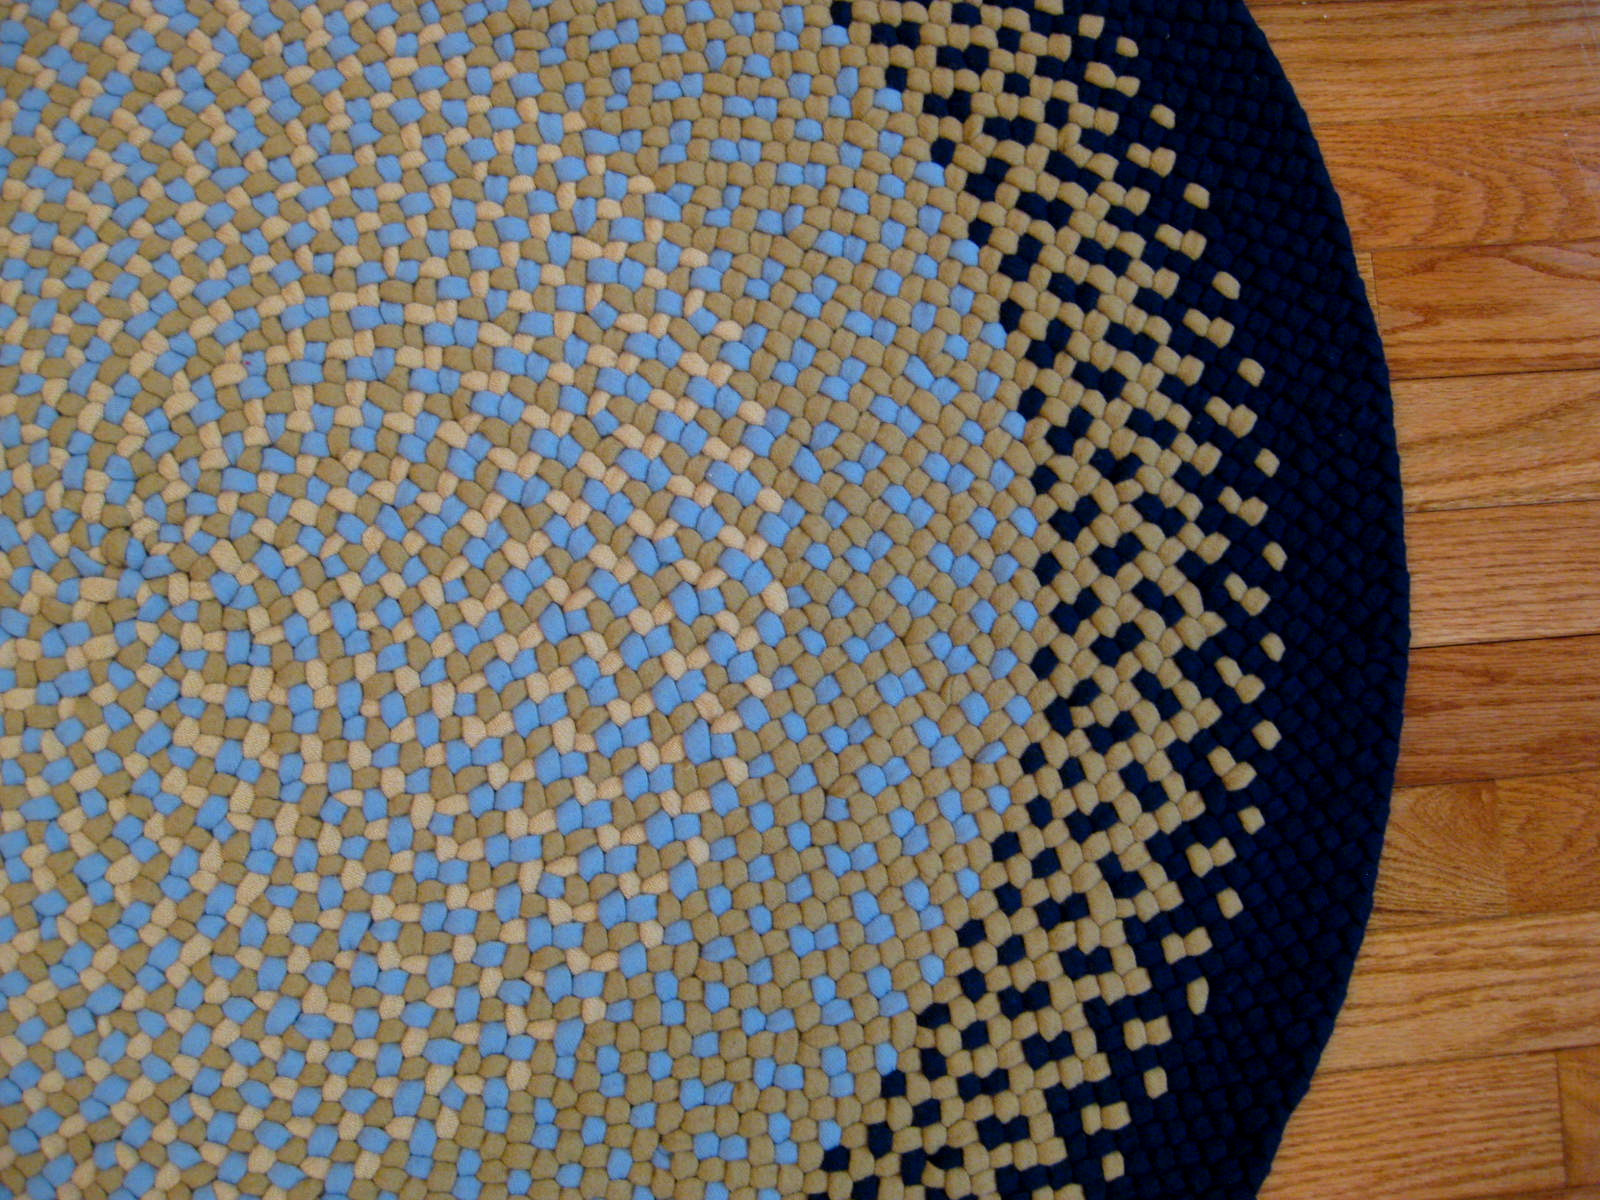 Wool Braided Rugs Project Design Idea And Decorations Easy Diy Round